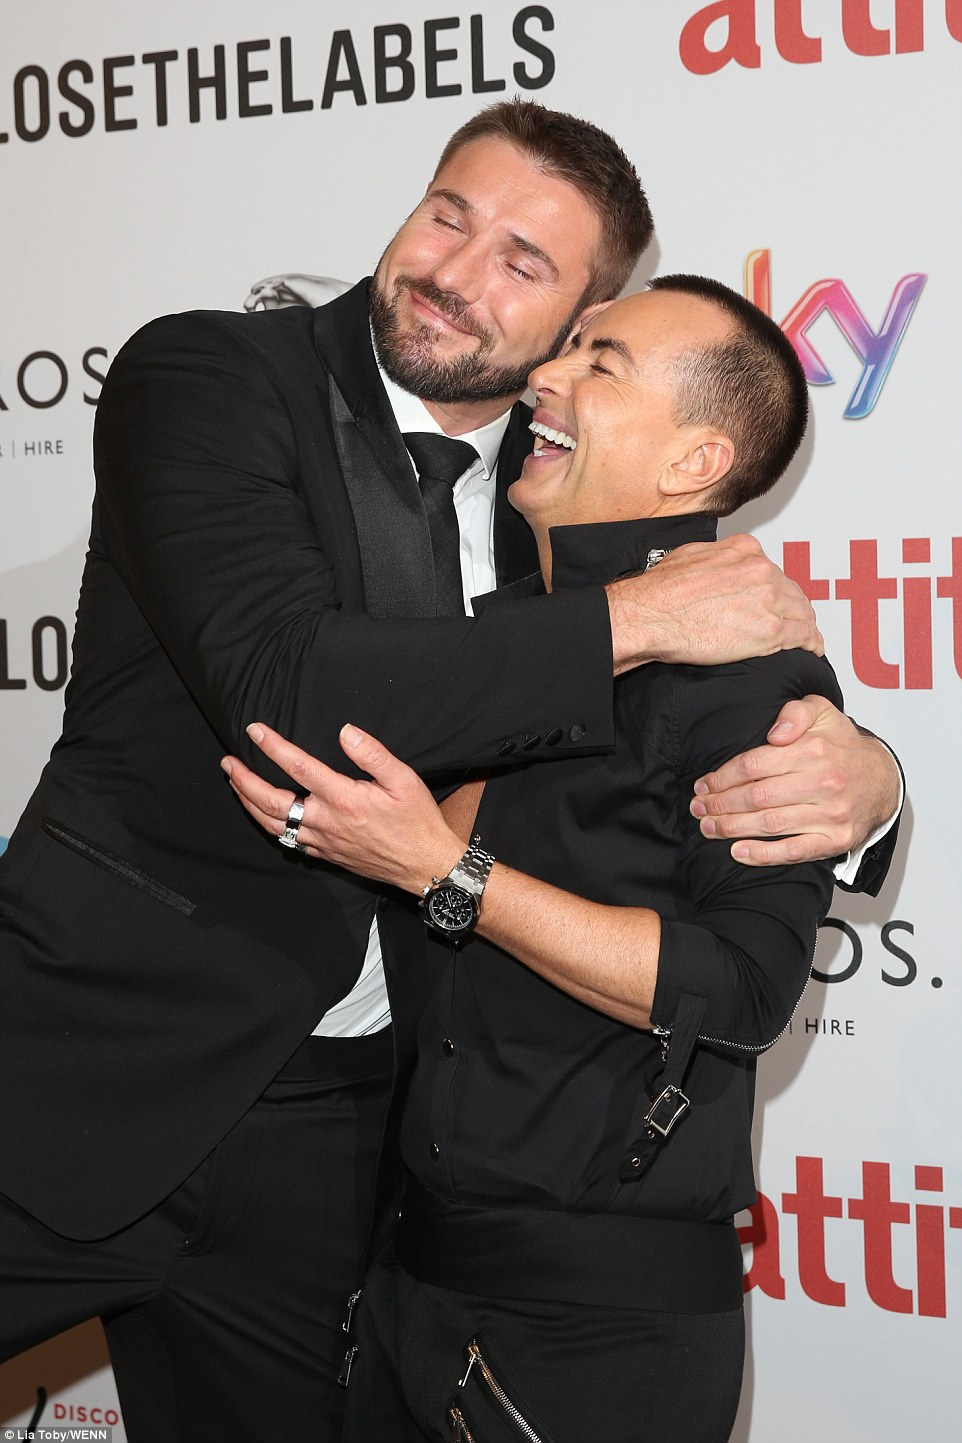 Cuddles: Ben Cohen snuggled up to fashion designer Julien McDonald as they both hit the red carpet in slick black ensembles